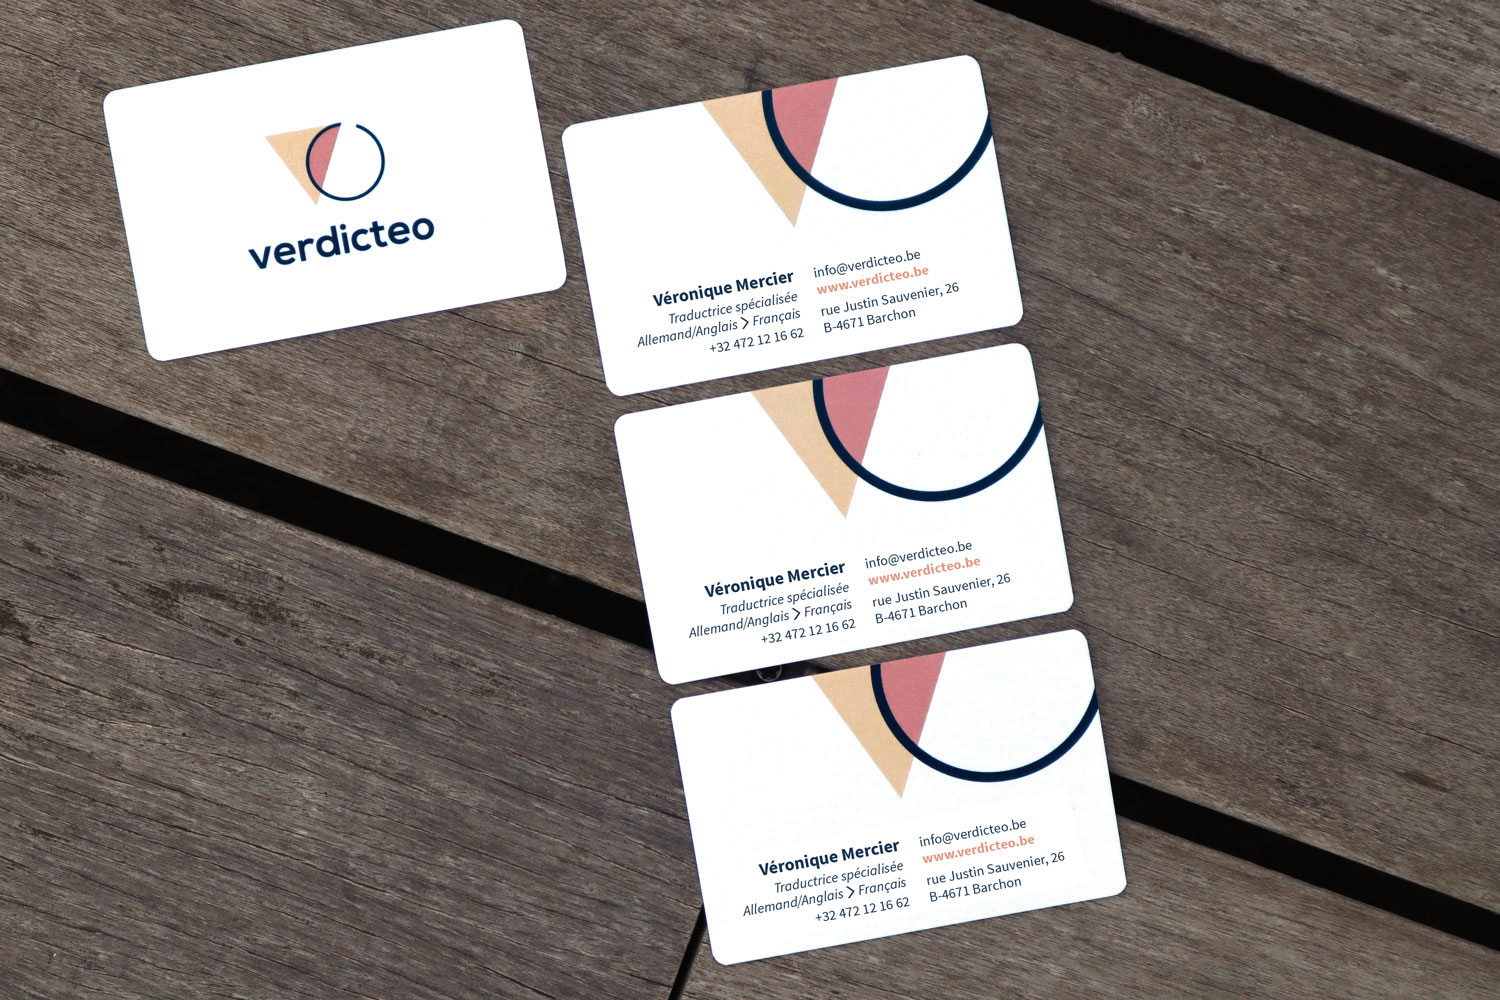 Verdicteo-cartes